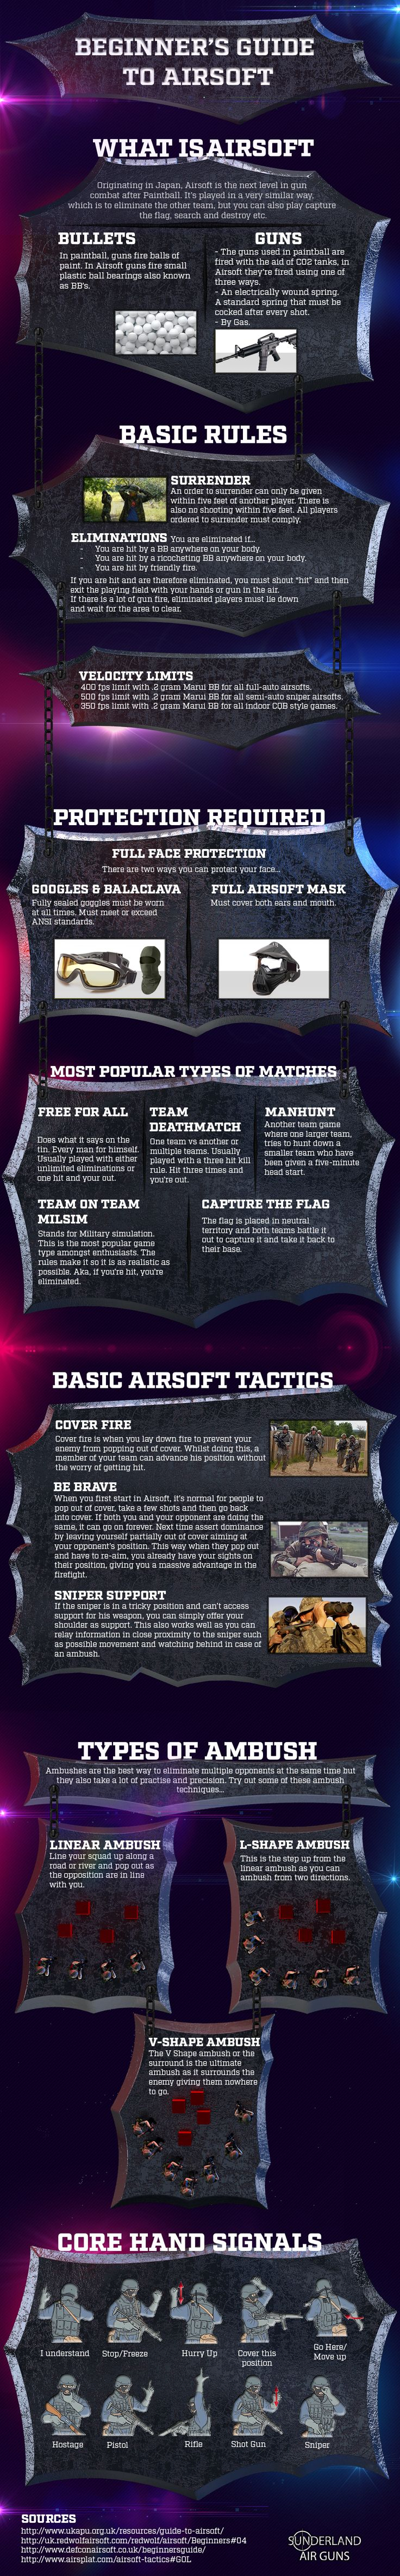 Beginner's Guide To Airsoft #Infographic #VideoGame